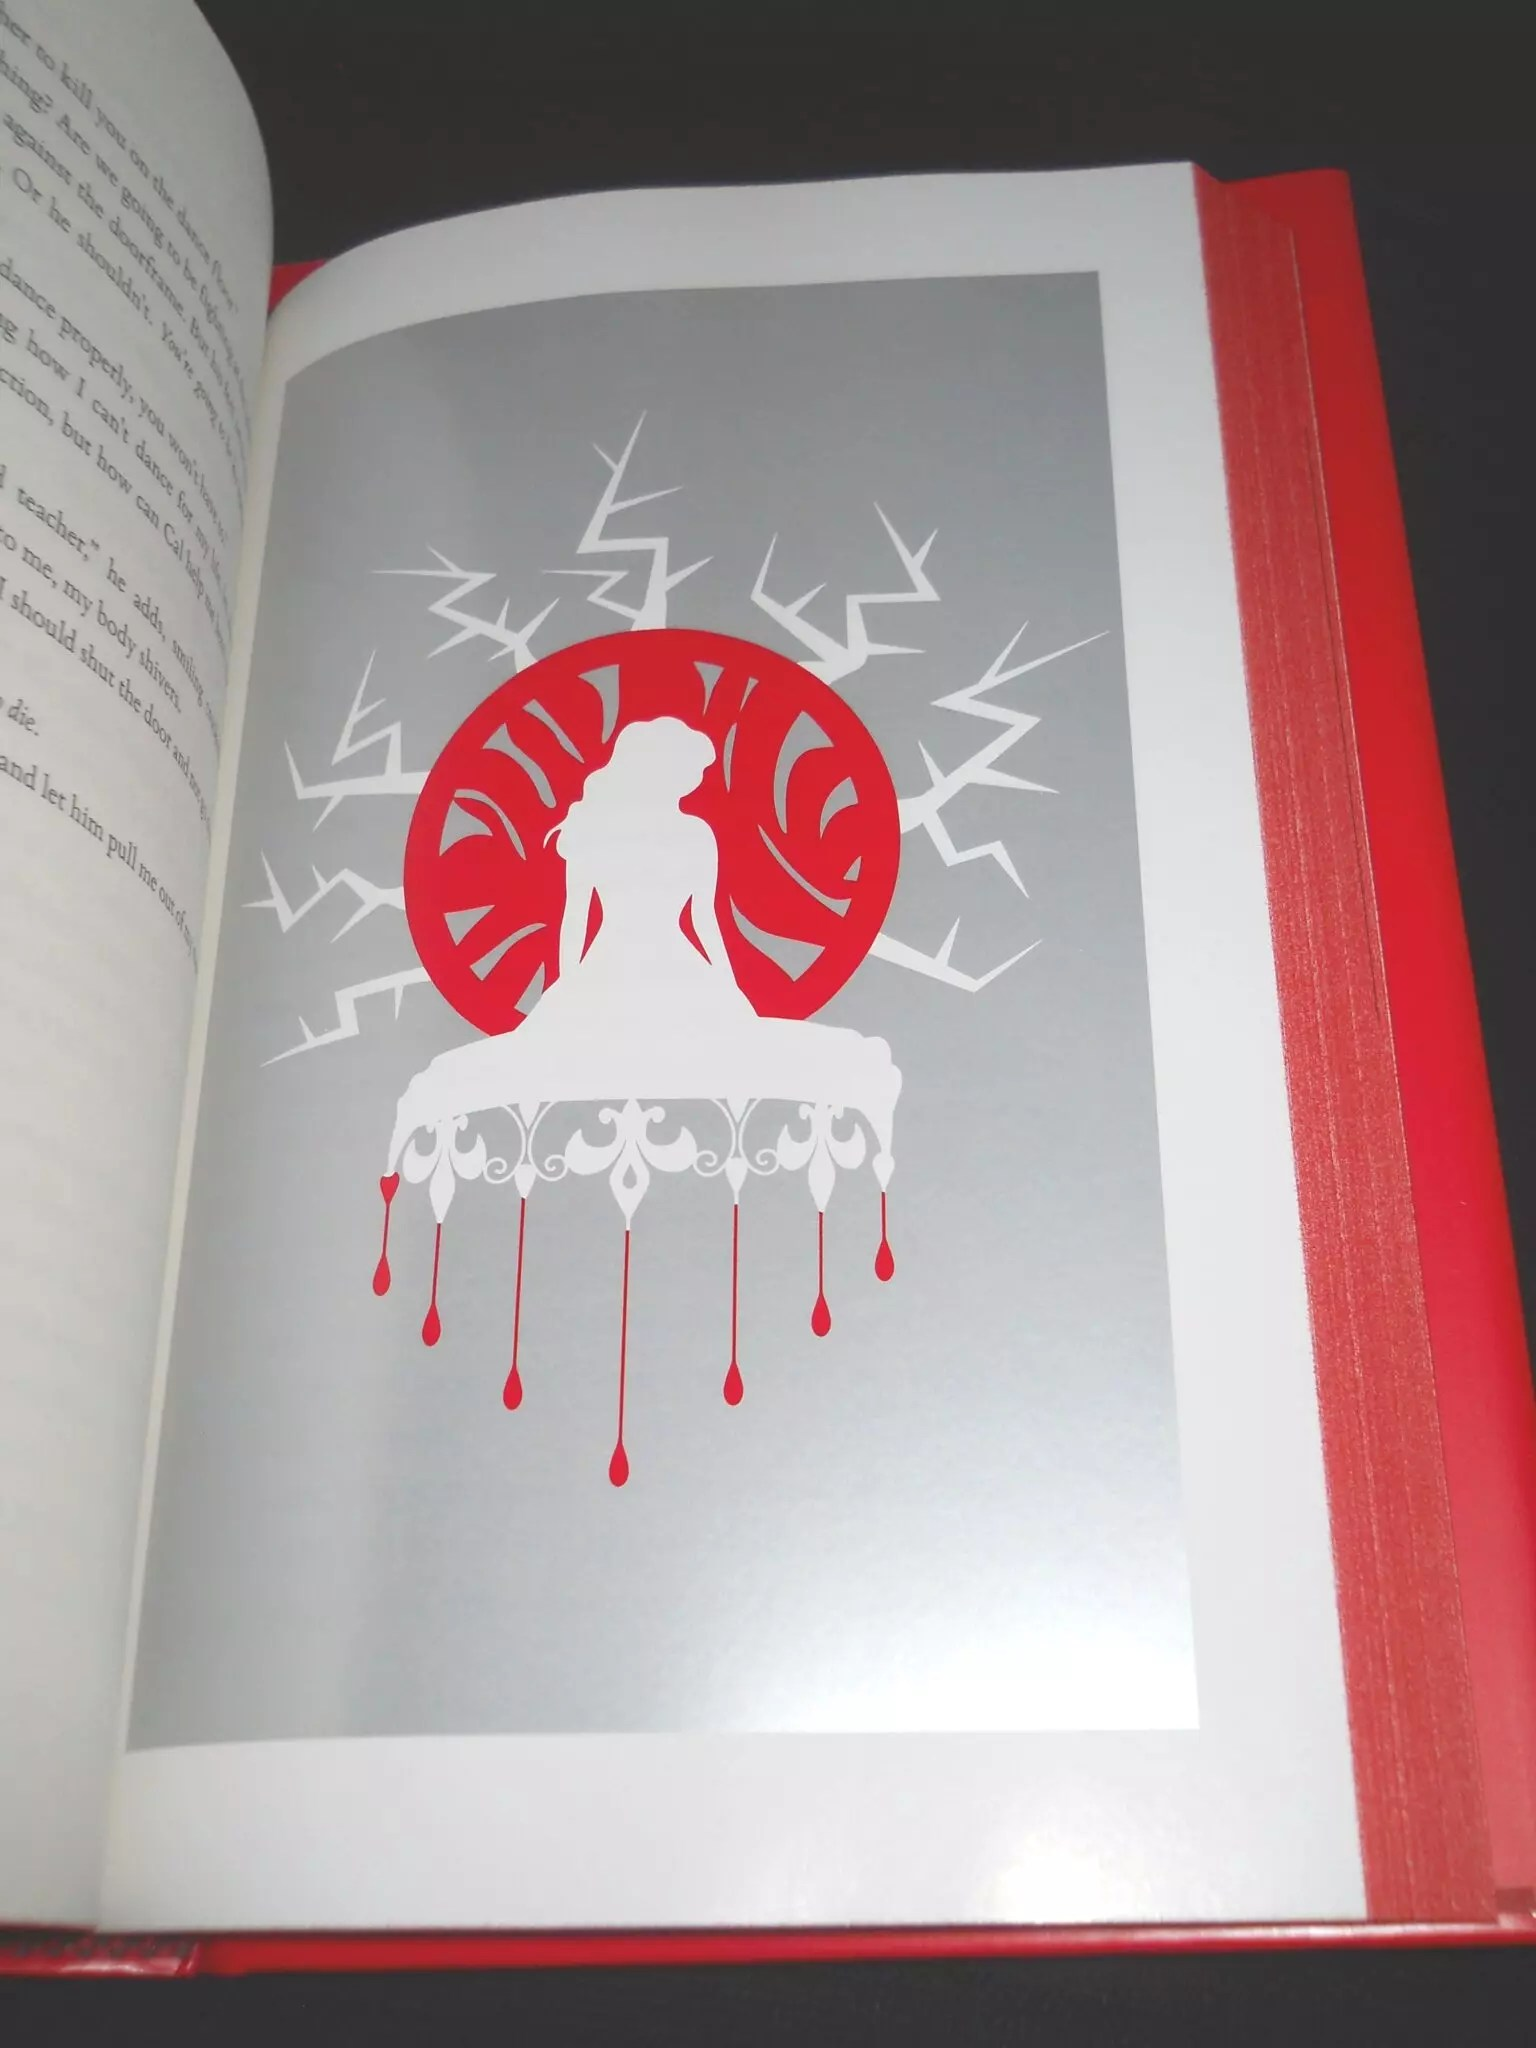 red queen illustrations